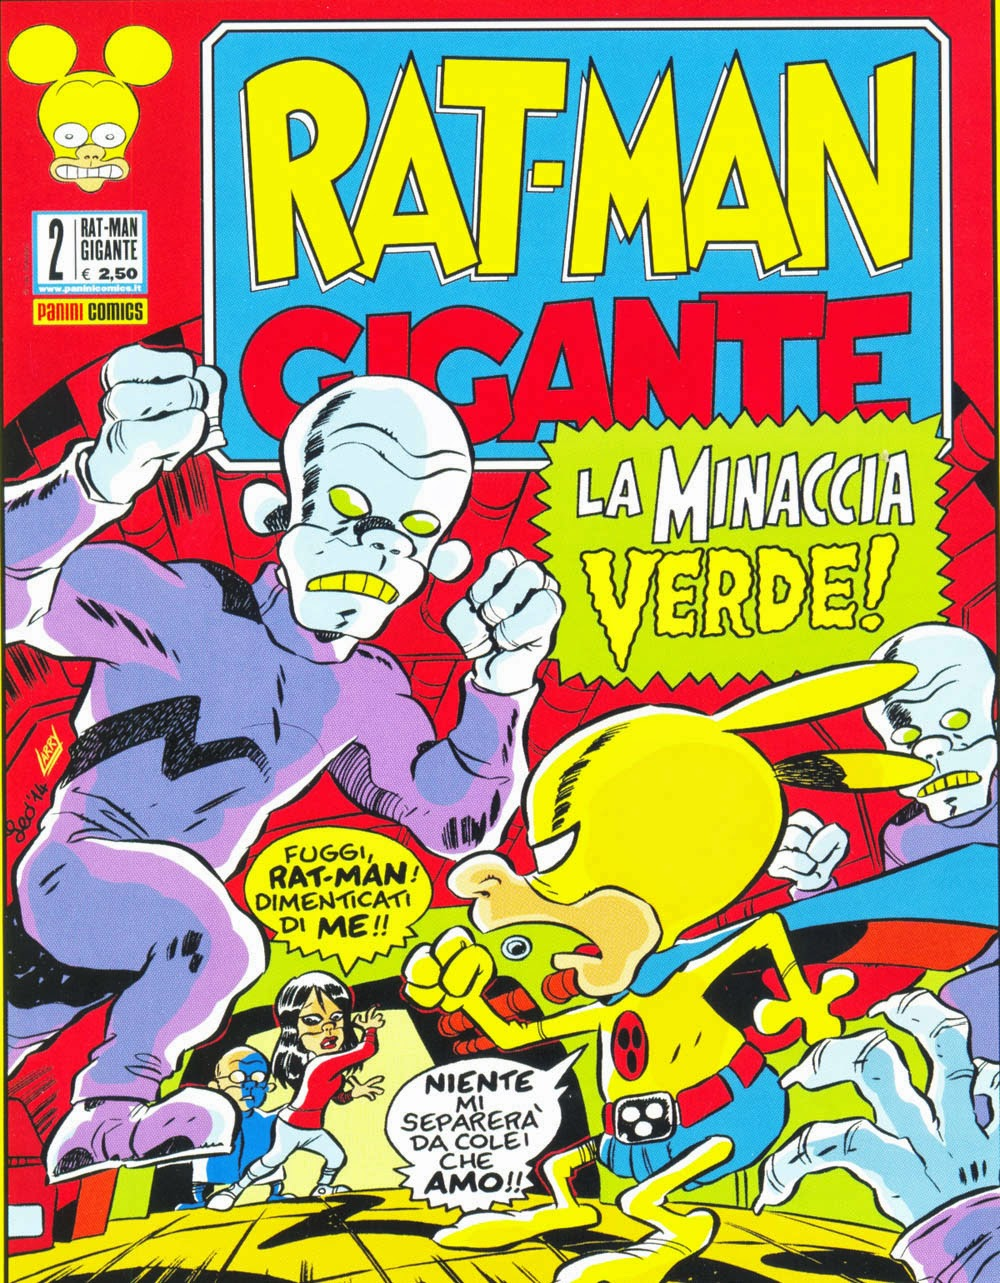 Rat-Man Gigante 2